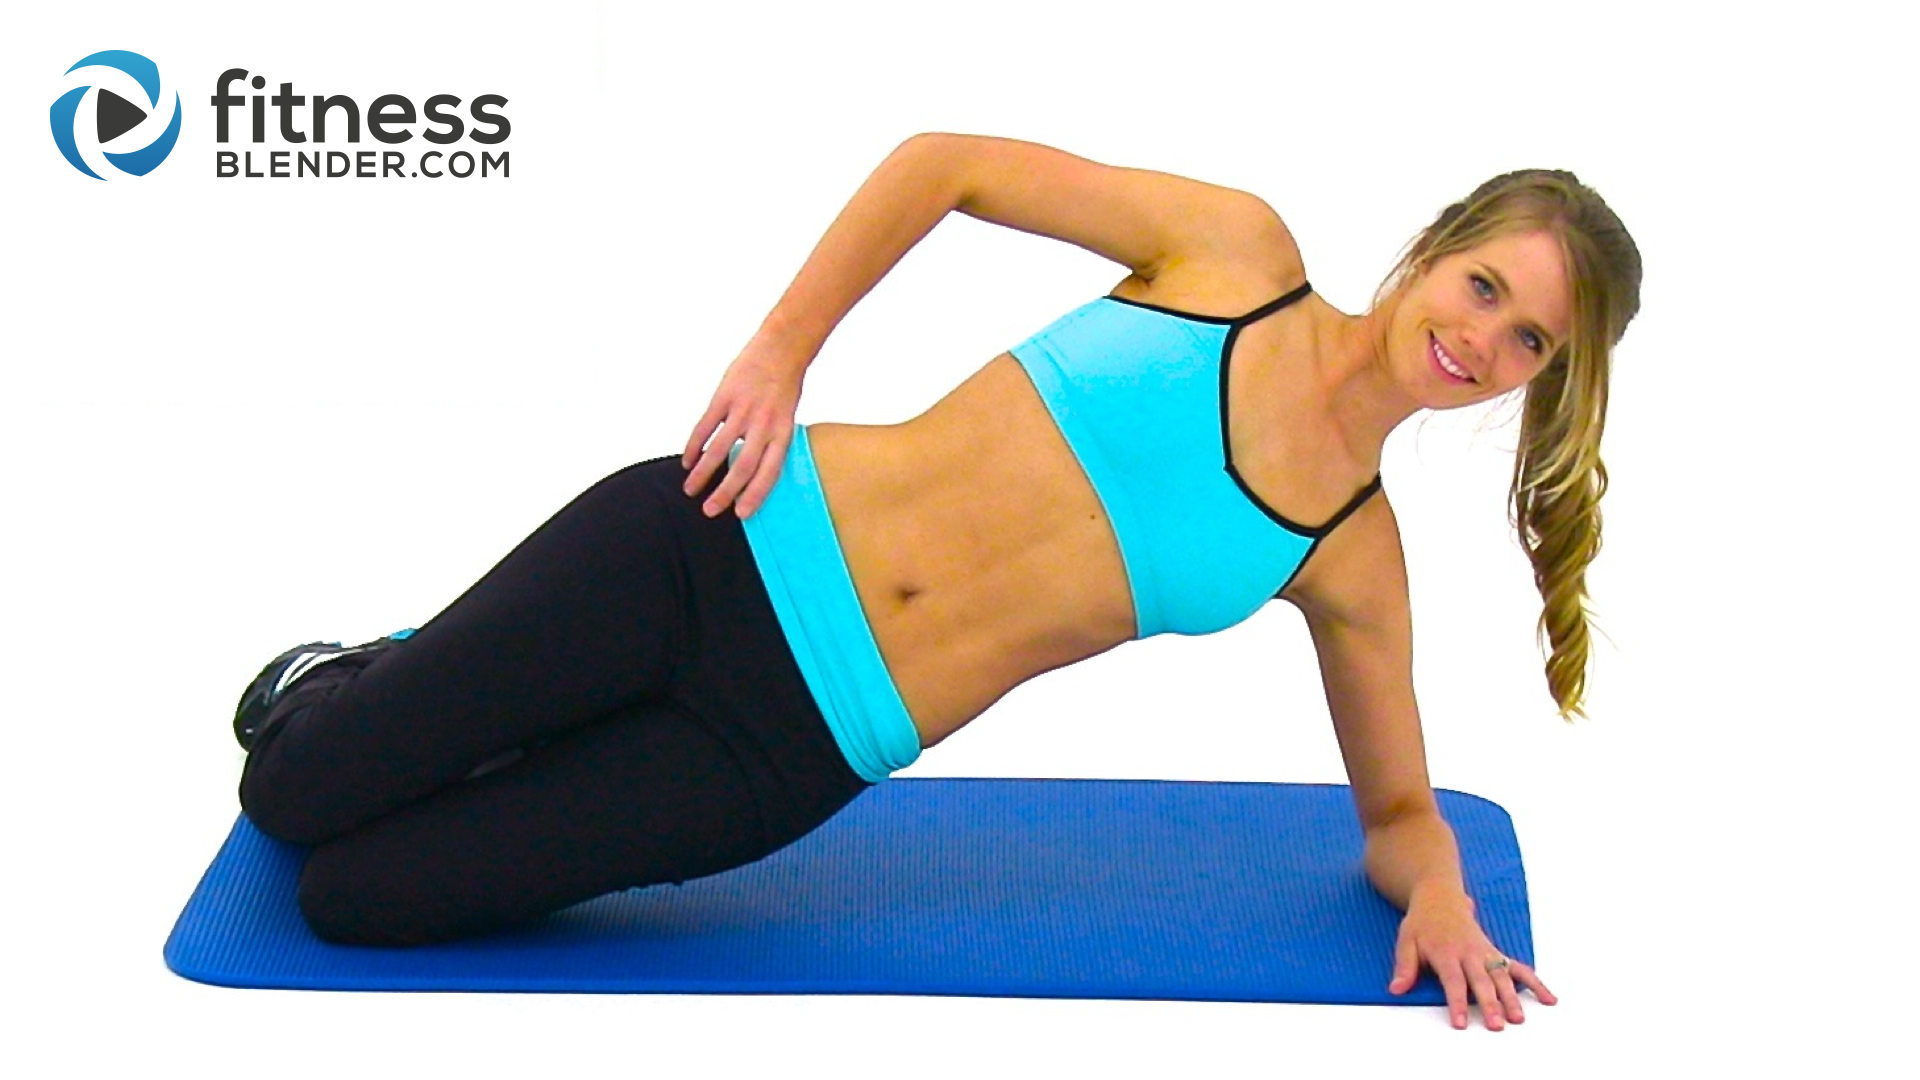 Fitness Blender 5x5x5 Pulse Workout for Abs and Obliques ...